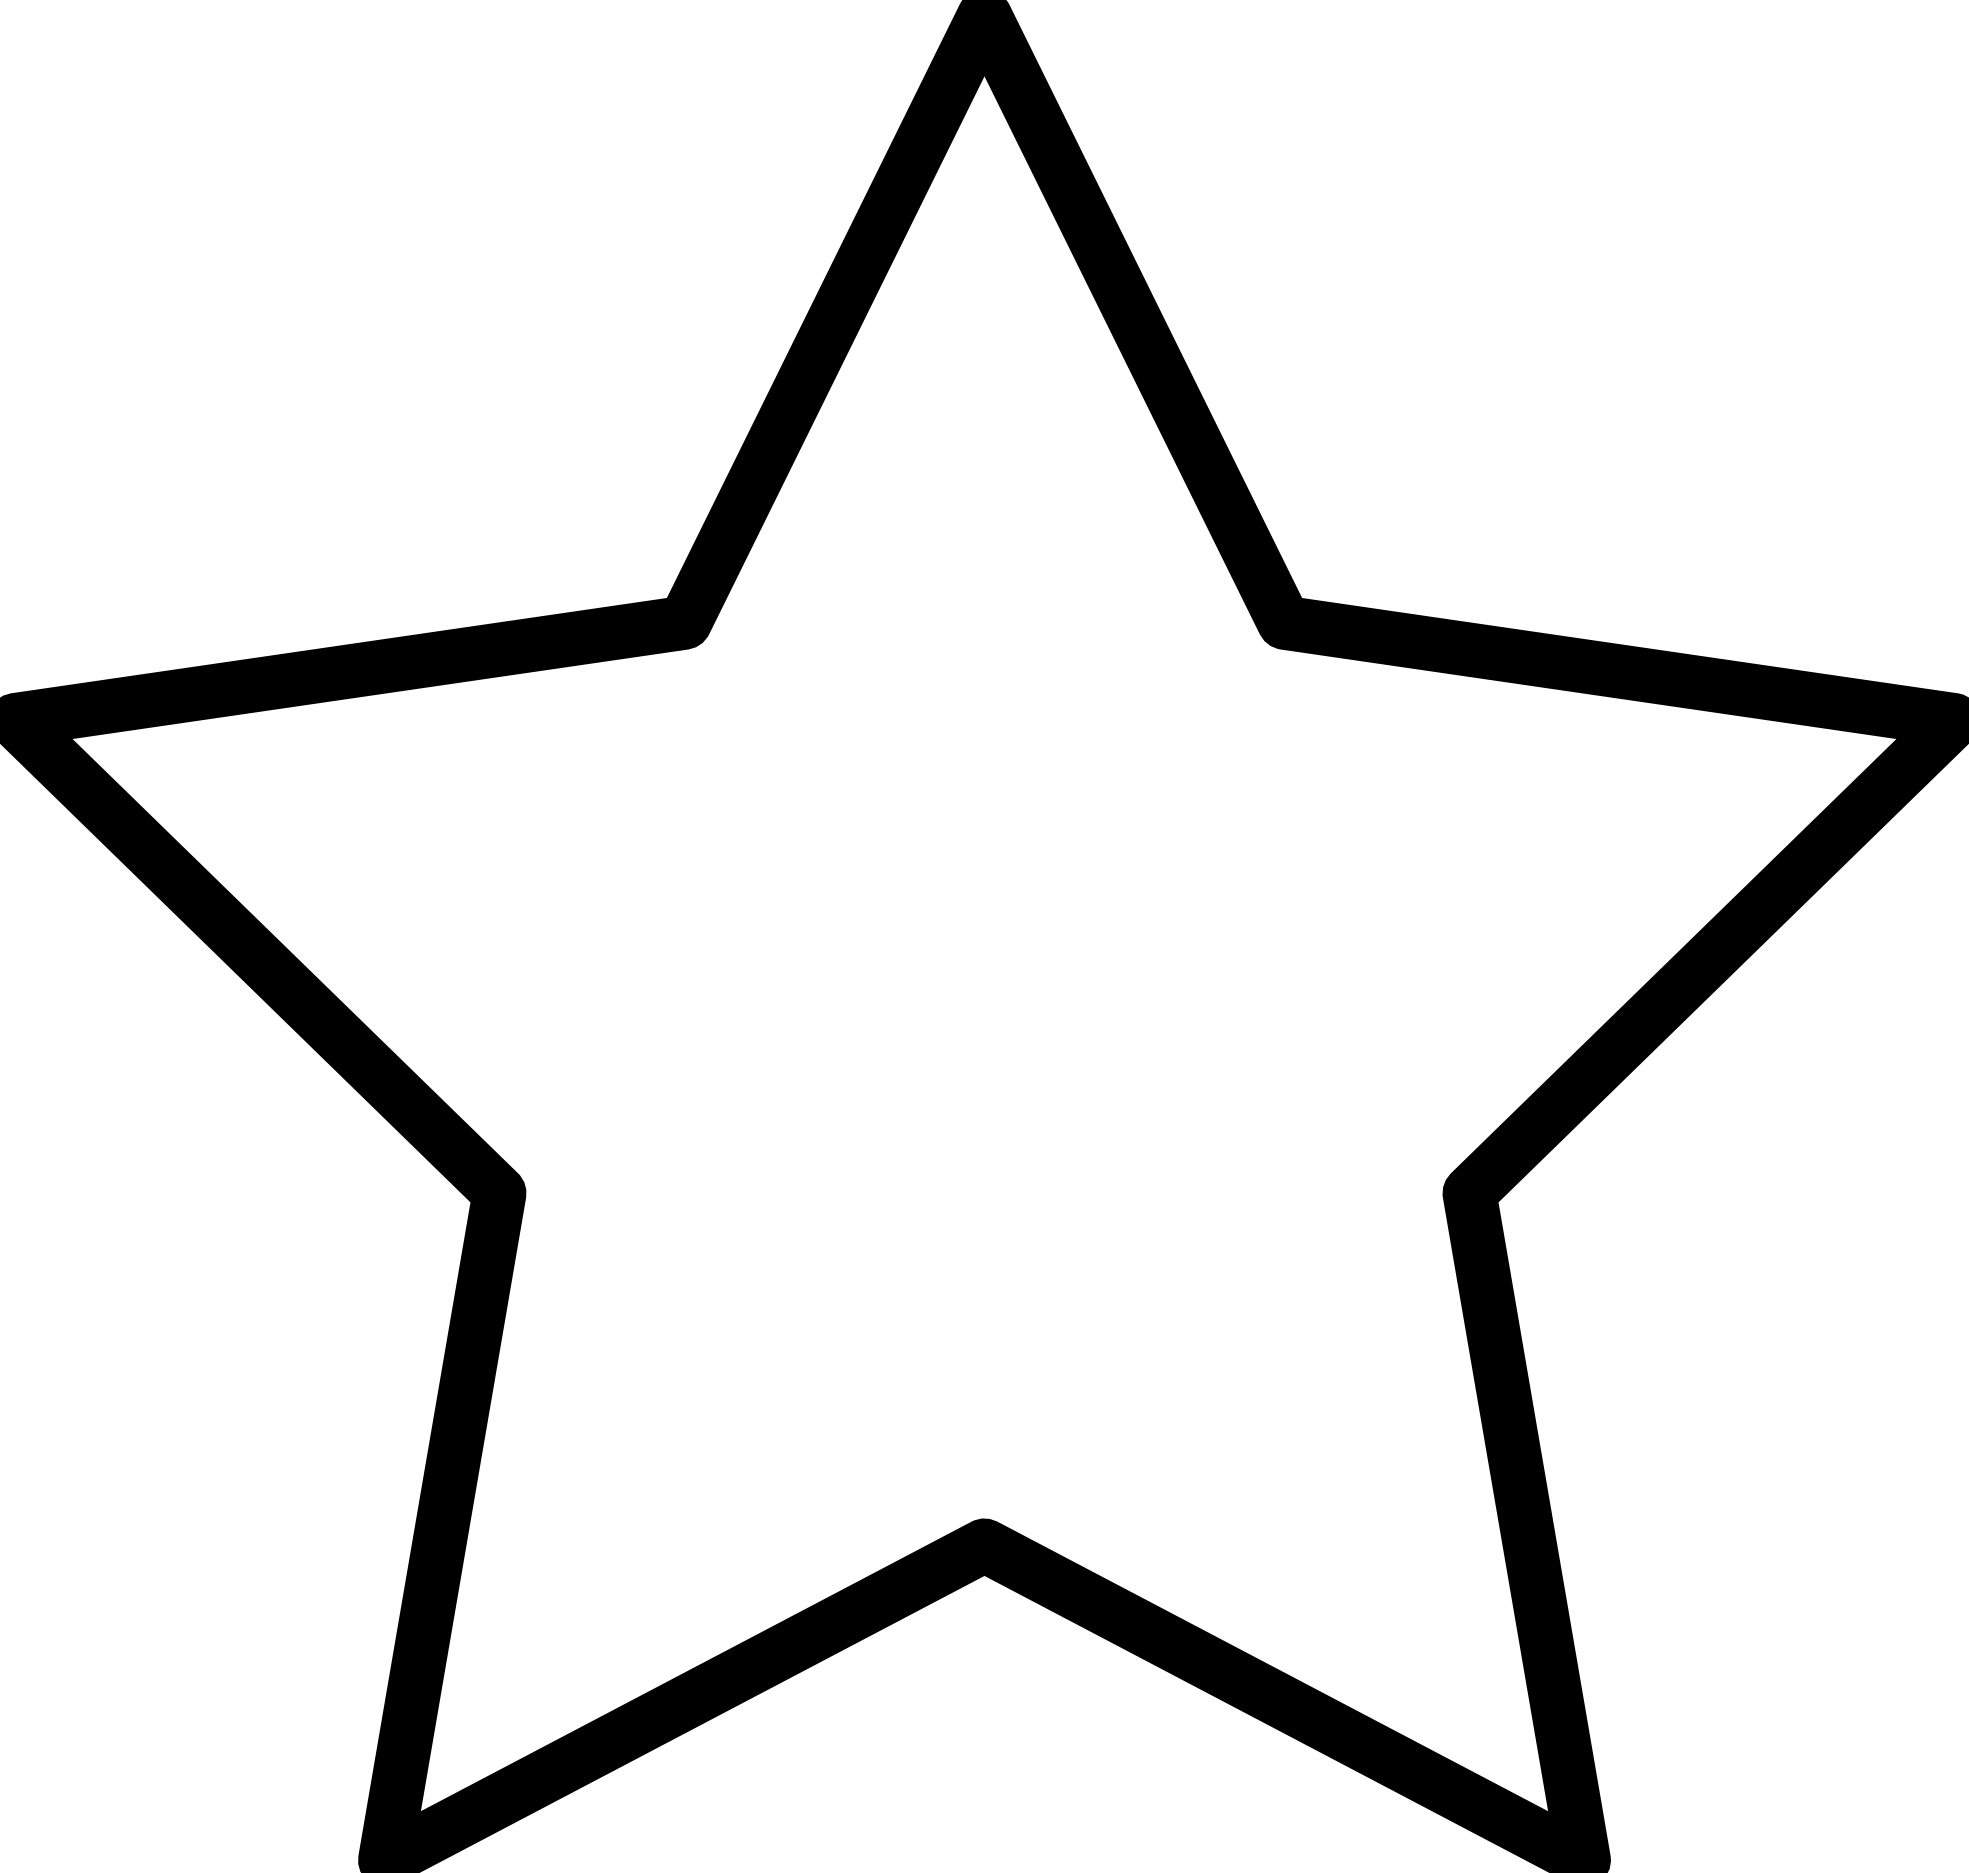 Black and white star clipart png banner transparent library Star Clip Art Outline Black And White | Clipart Panda - Free Clipart ... banner transparent library